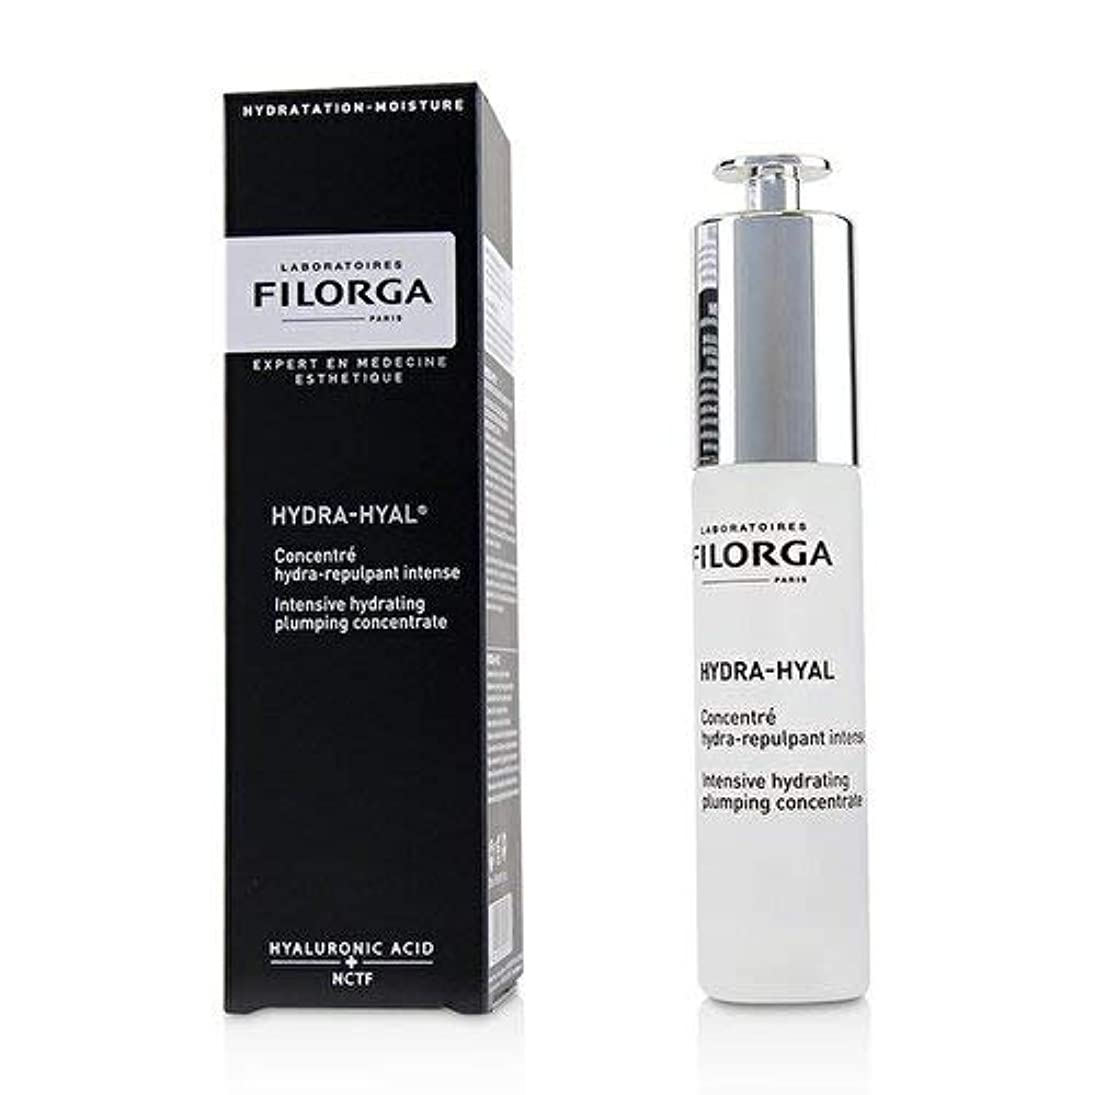 大統領通貨辞任Filorga Hydra-Hyal Intensive Hydrating Plumping Concentrate 1V1320DM/359720 30ml/1oz並行輸入品